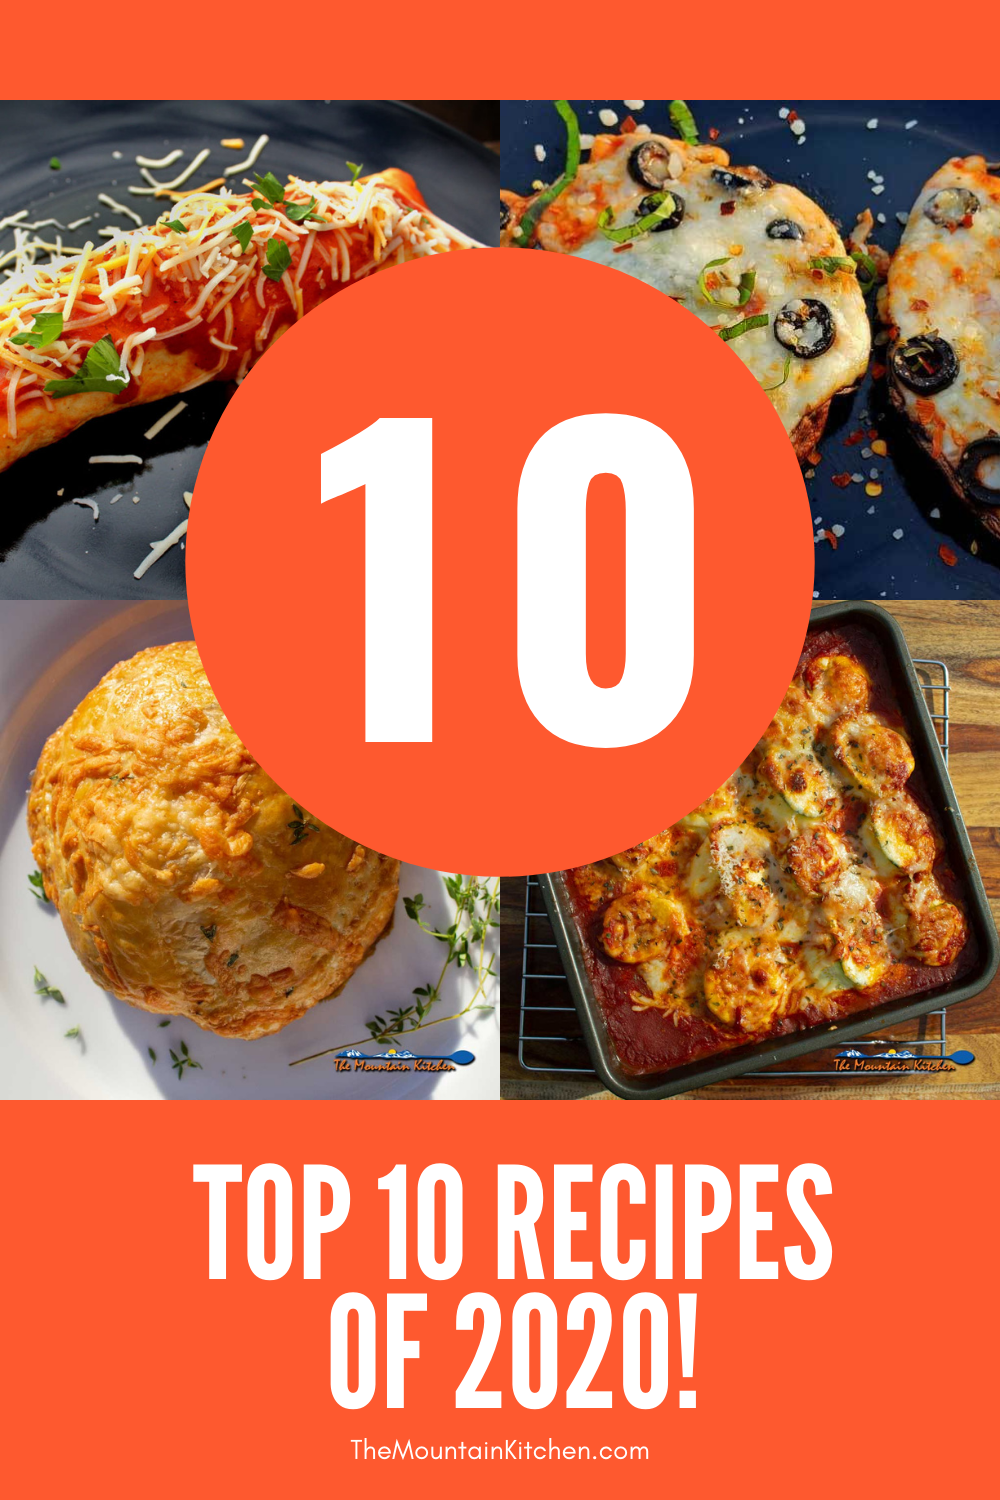 From smoky meat to veggie soup, these are our top 10 recipes of 2020. See what recipes made the biggest impact on your taste buds this year!